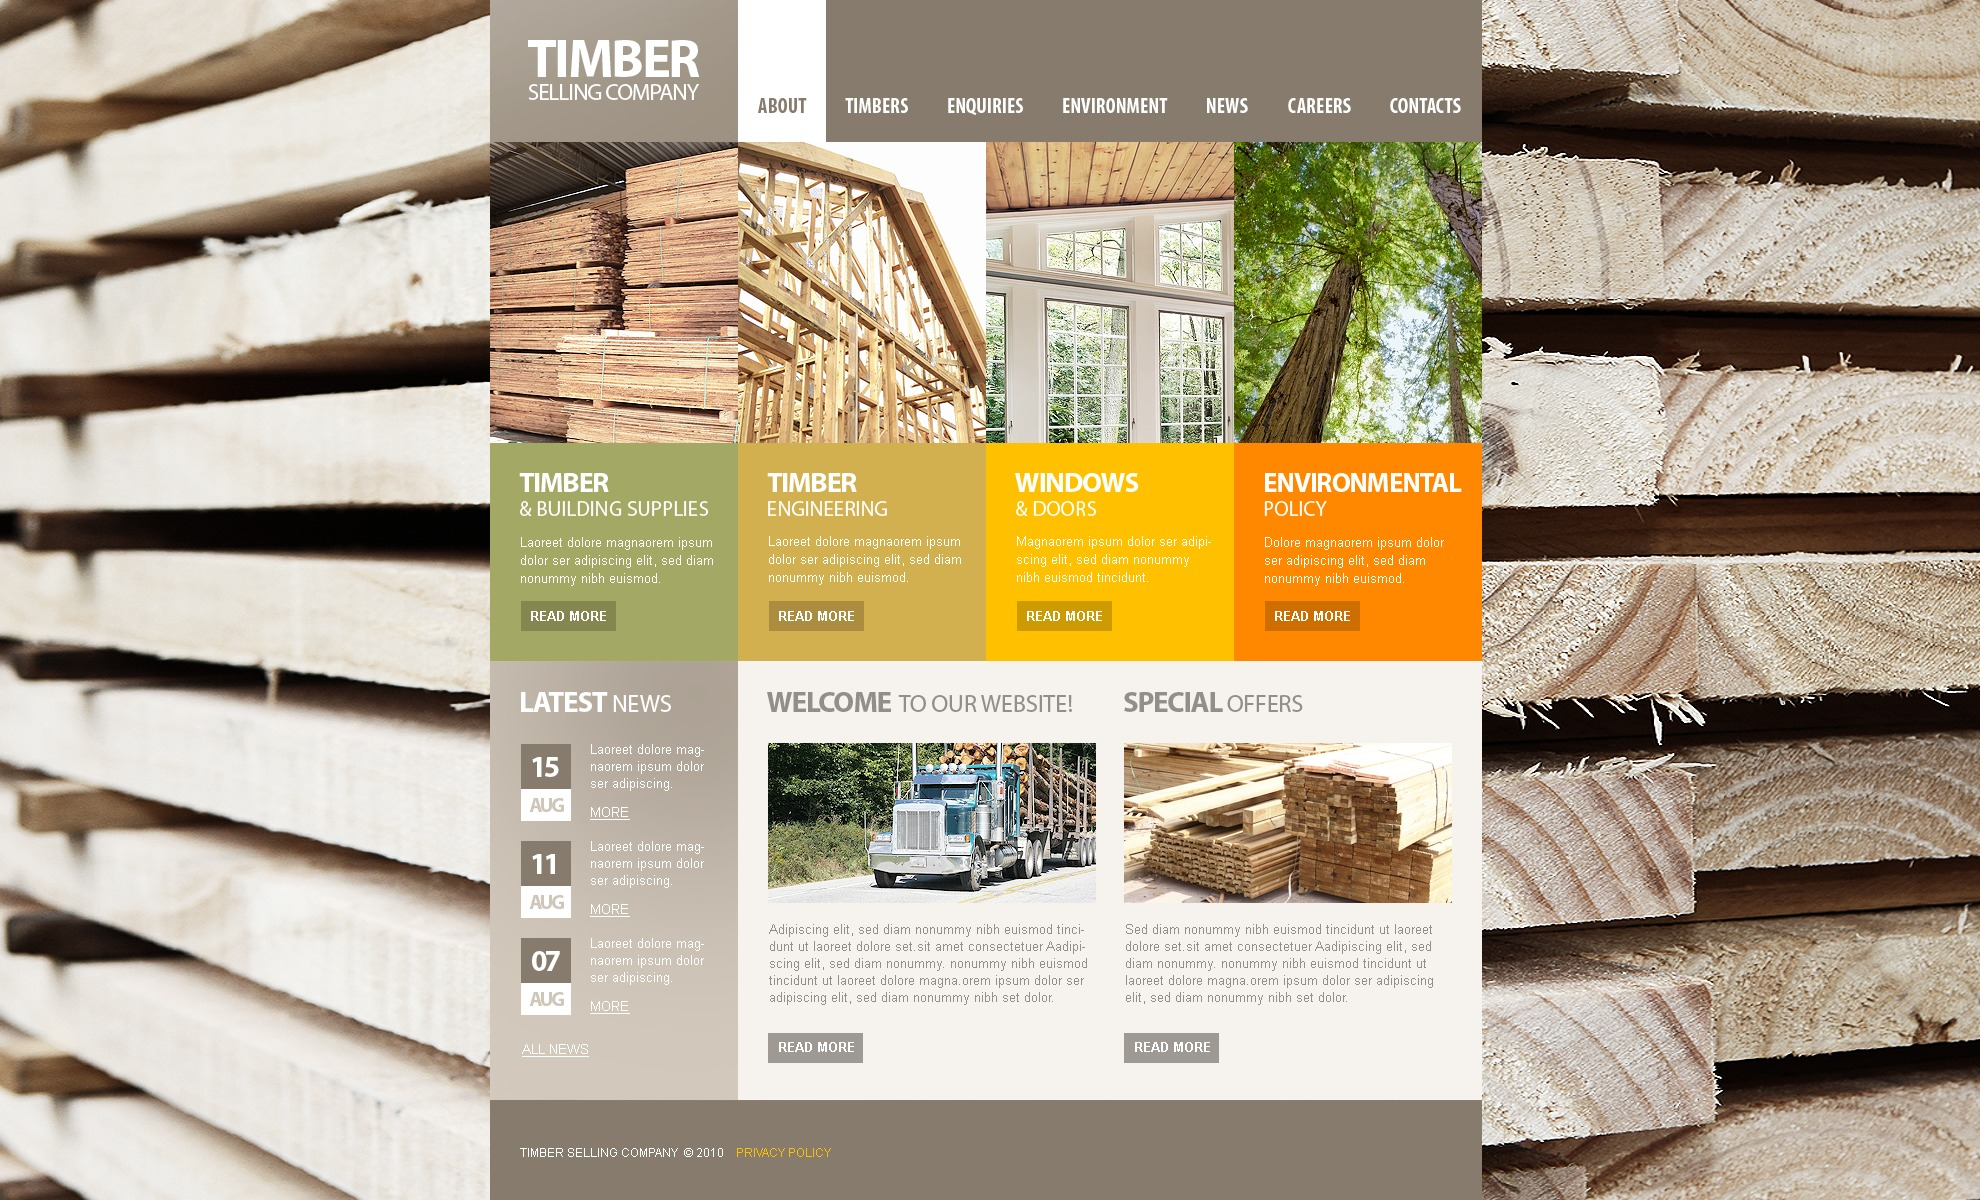 The Timber Selling Company PSD Design 54450, one of the best PSD templates of its kind (industrial, most popular, wide), also known as timber selling company PSD template, timbering PSD template, industry PSD template, material PSD template, mantel PSD template, planks PSD template, redwood PSD template, wood PSD template, forest PSD template, fir PSD template, pine PSD template, oak PSD template, flooring PSD template, beam PSD template, millwork PSD template, product PSD template, mallet PSD template, dismantling PSD template, prices PSD template, sap PSD template, stain PSD template, lumber PSD template, coniferous PSD template, dimensions PSD template, boards PSD template, decks design PSD template, engineering PSD template, frame PSD template, construction and related with timber selling company, timbering, industry, material, mantel, planks, redwood, wood, forest, fir, pine, oak, flooring, beam, millwork, product, mallet, dismantling, prices, sap, stain, lumber, coniferous, dimensions, boards, decks design, engineering, frame, construction, etc.